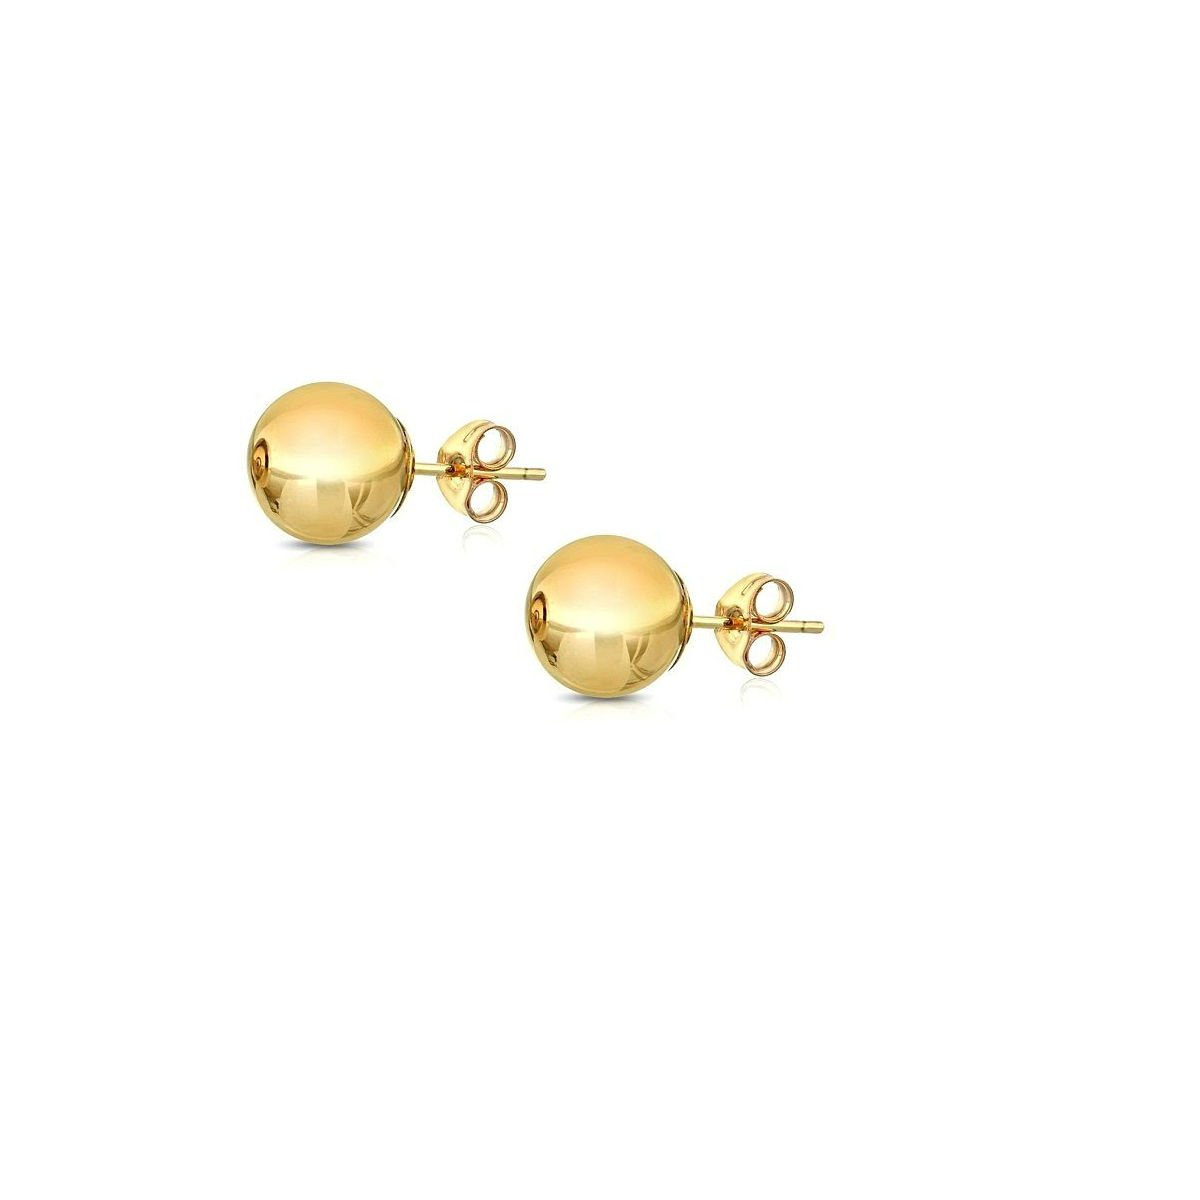 14K Gold Ball Stud Earrings, Sizes 3MM-8MM (Yellow Gold, 7)